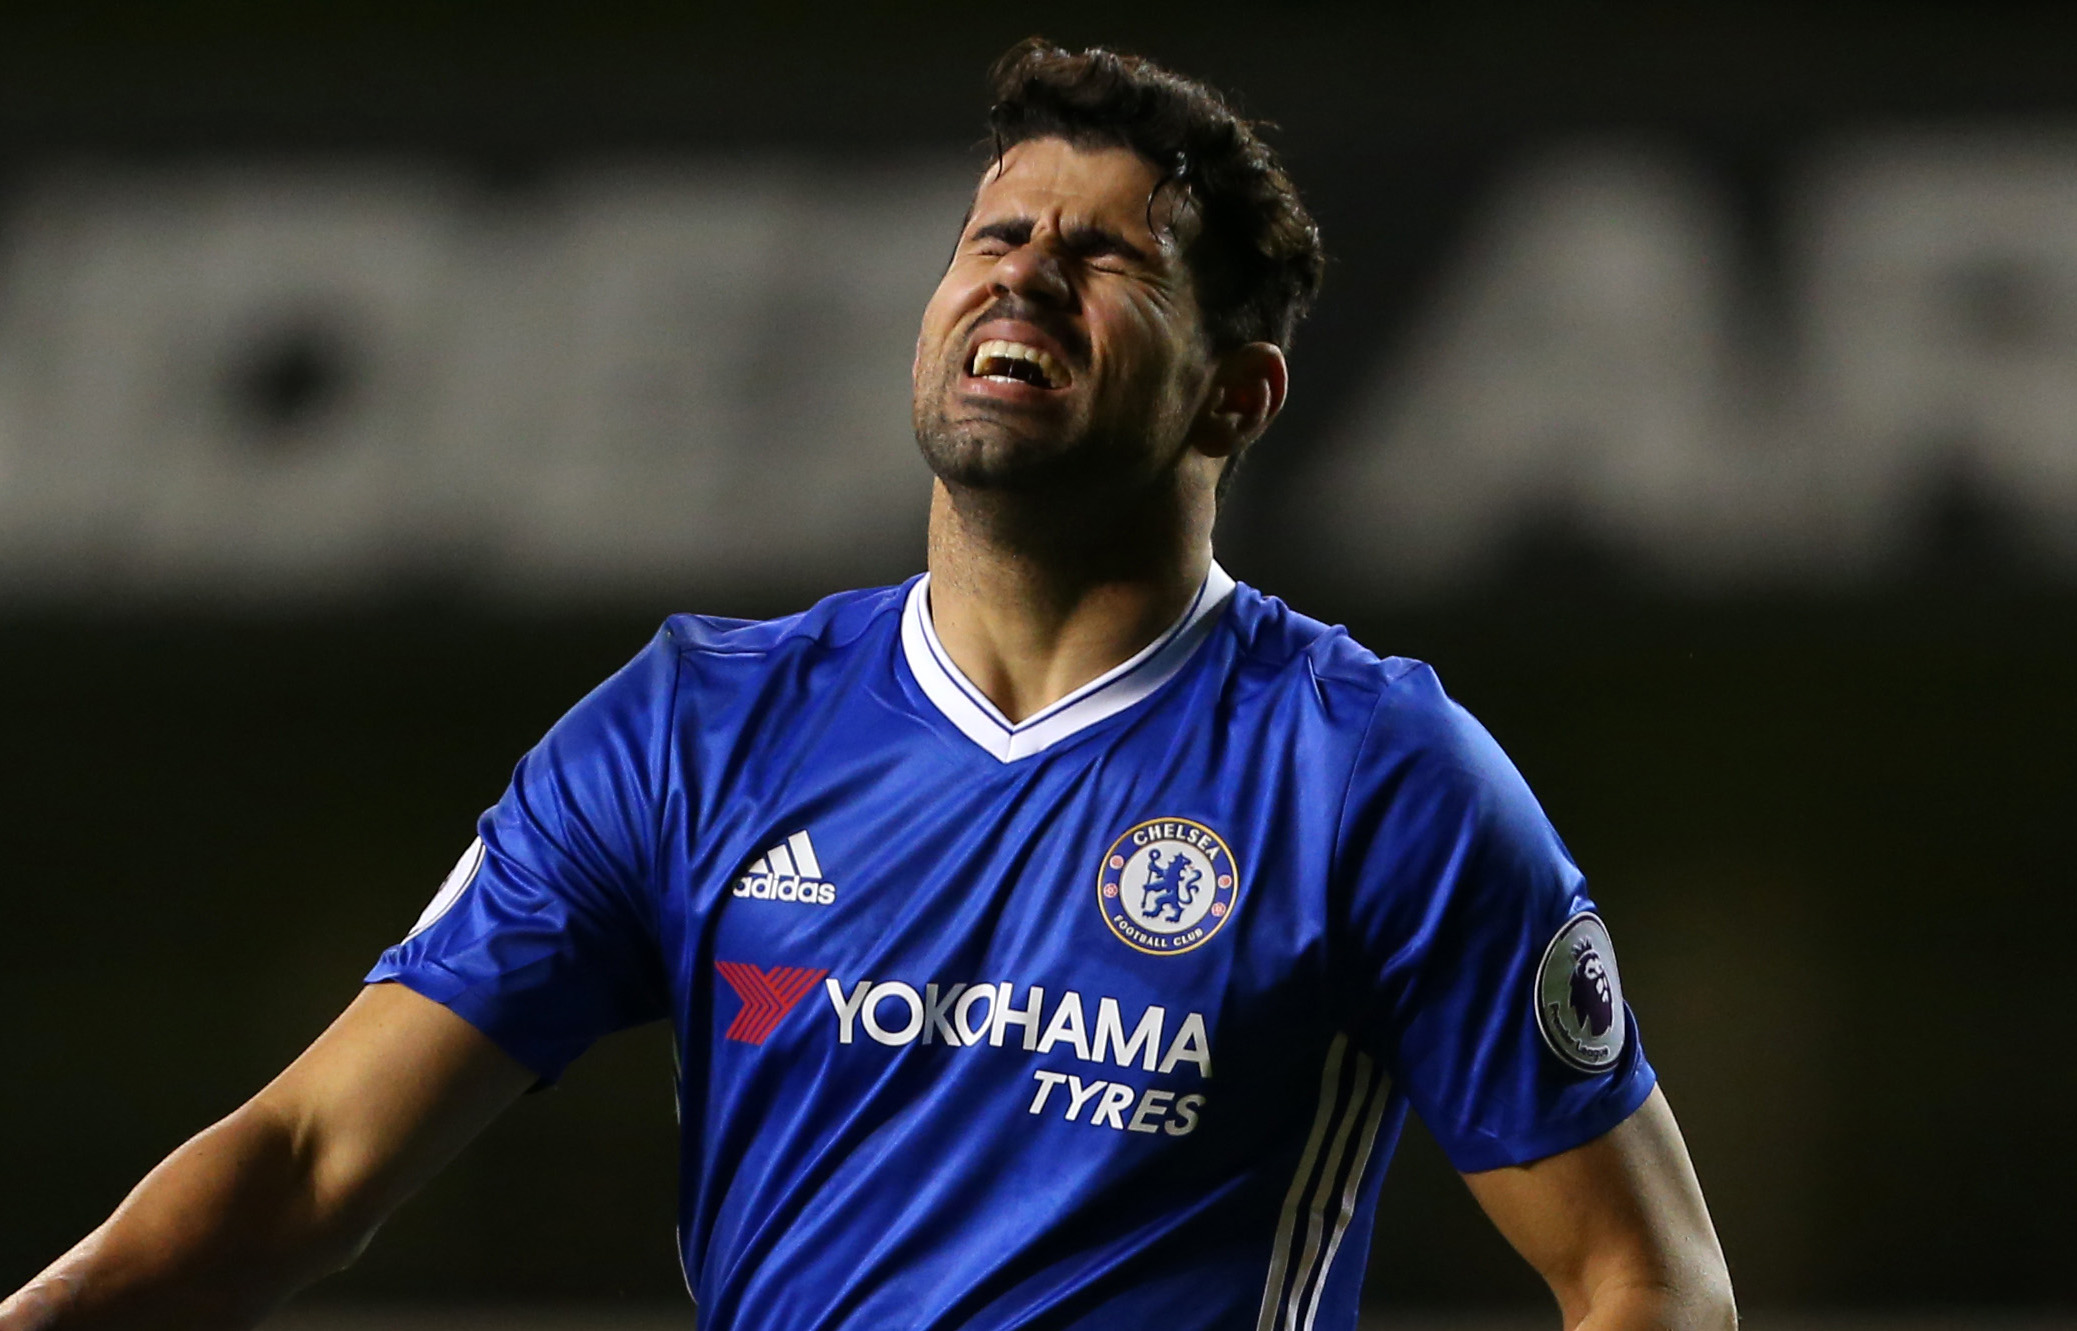 LONDON, ENGLAND - JANUARY 04: Diego Costa of Chelsea reacts during the Premier League match between Tottenham Hotspur and Chelsea at White Hart Lane on January 4, 2017 in London, England. (Photo by Catherine Ivill - AMA/Getty Images)